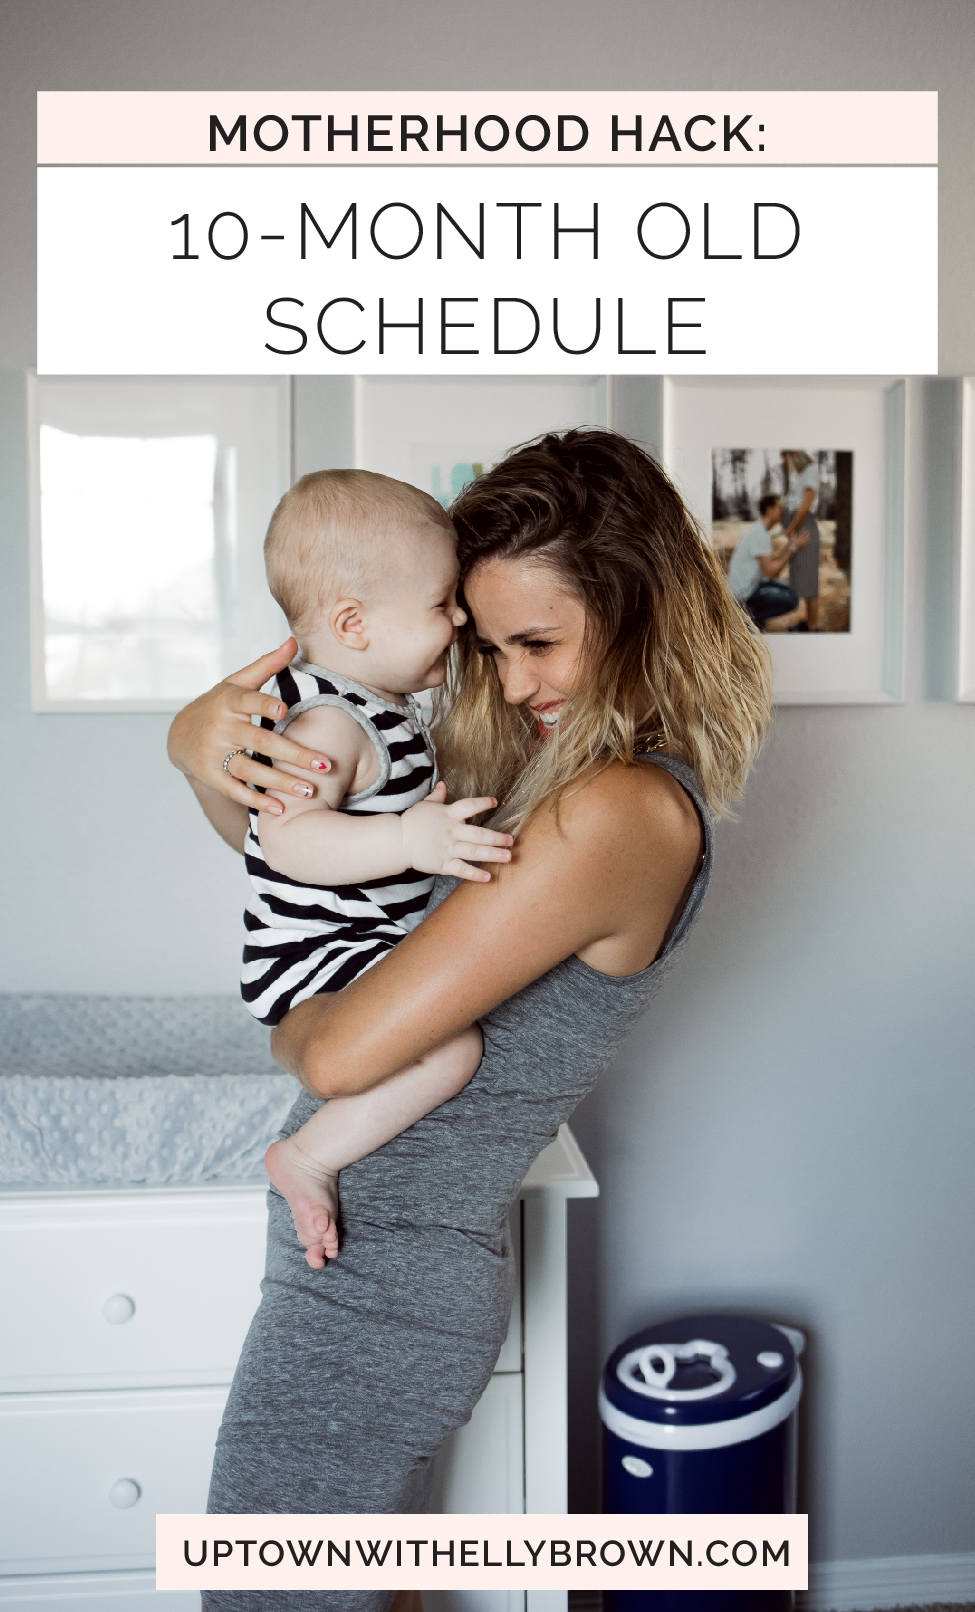 Houston lifestyle blogger Uptown with Elly Brown shares her 10 month old schedule from sleeping, eating, and activity time. Click here for more!